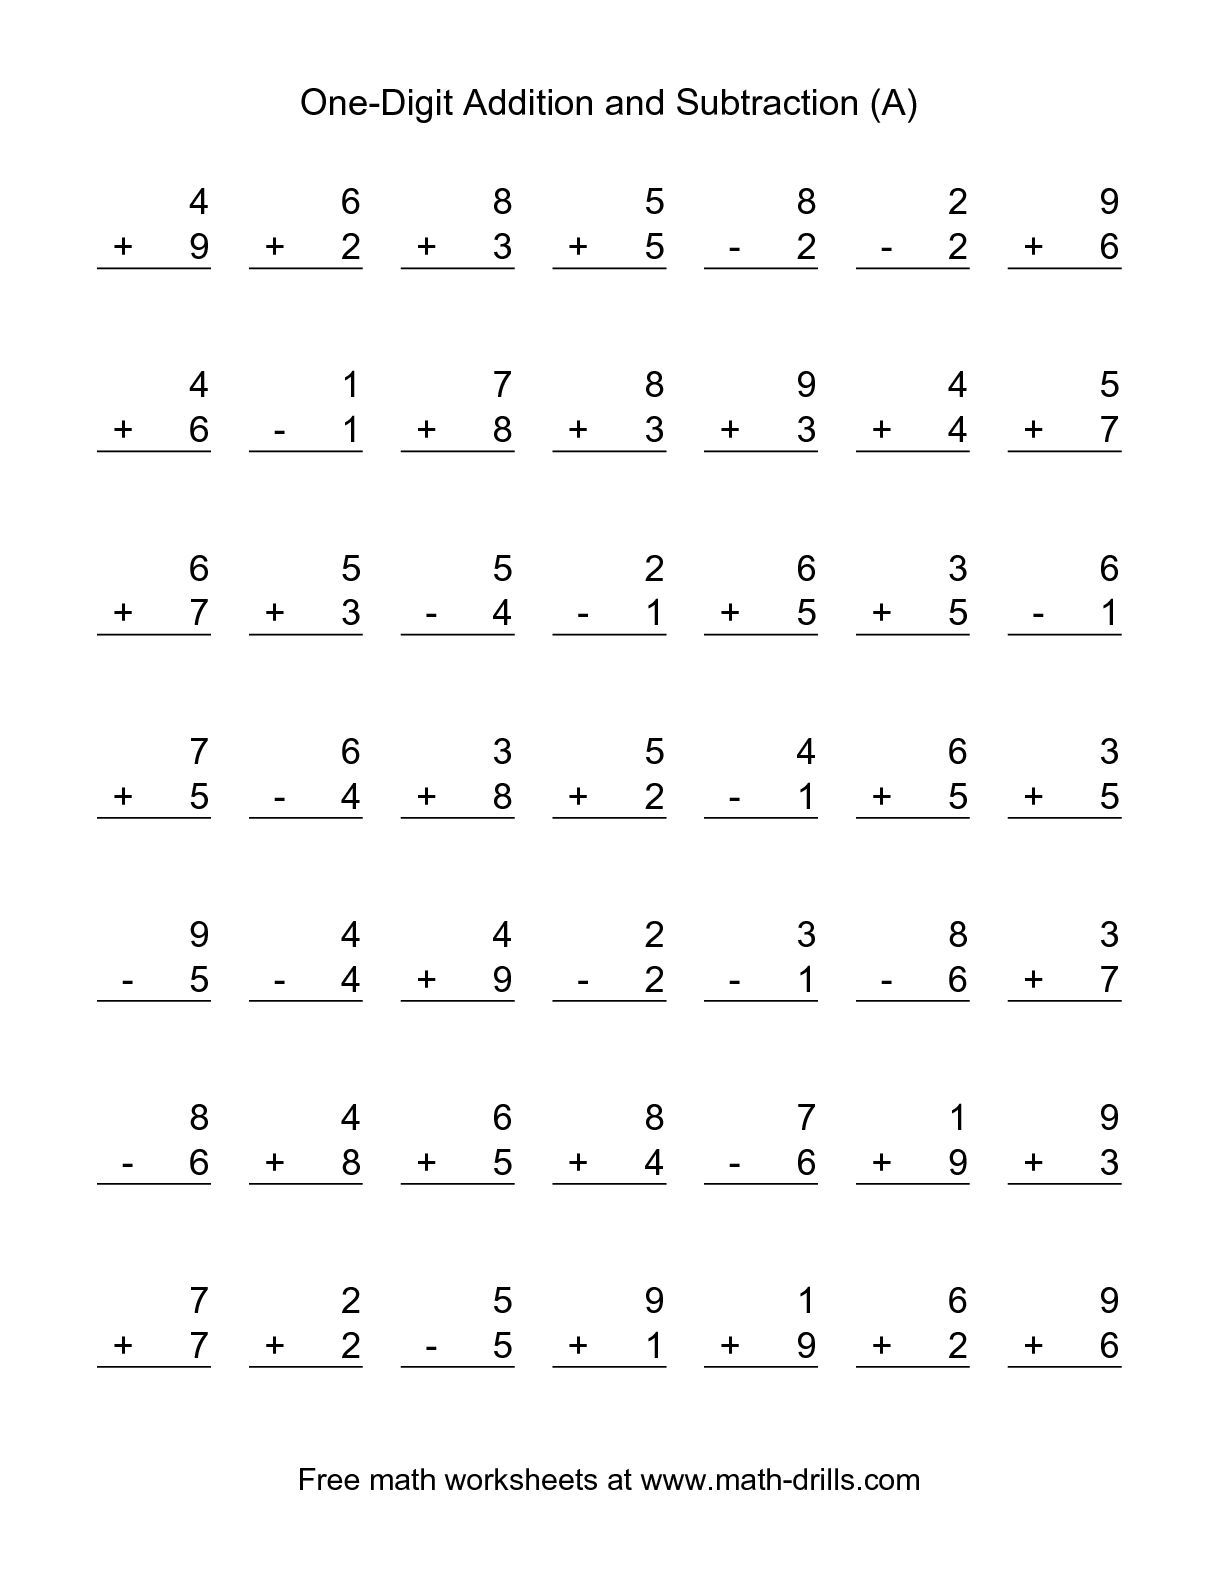 The Single-Digit (A) Math Worksheet From The Combined Addition And - Free Printable Mixed Addition And Subtraction Worksheets